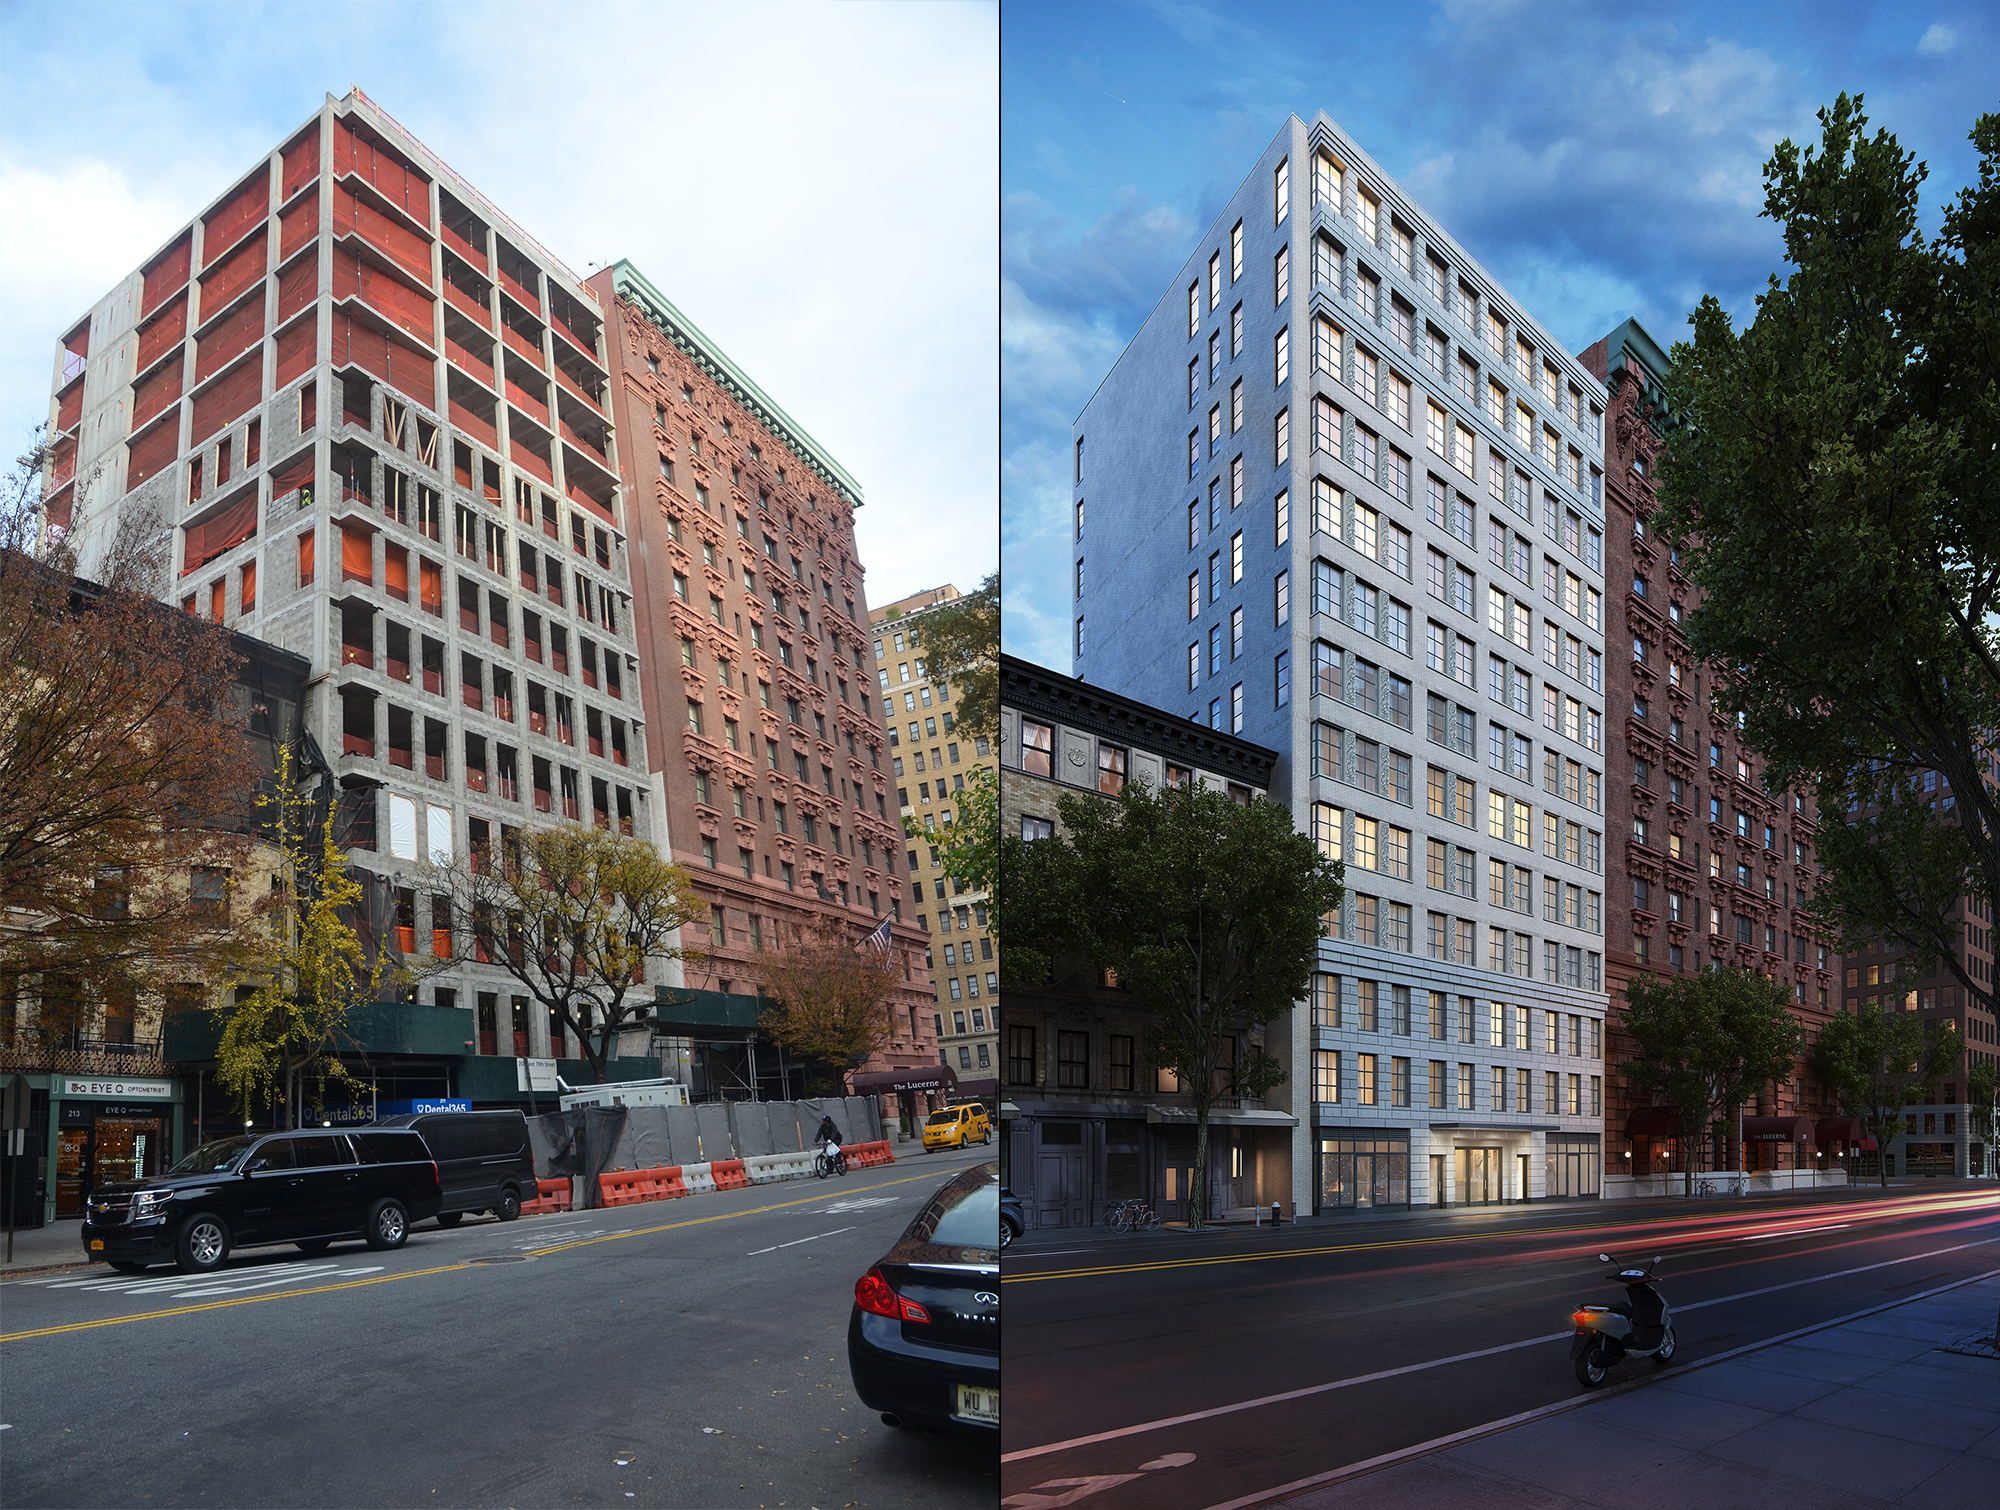 207W79 under construction, and a rendering of it when complete